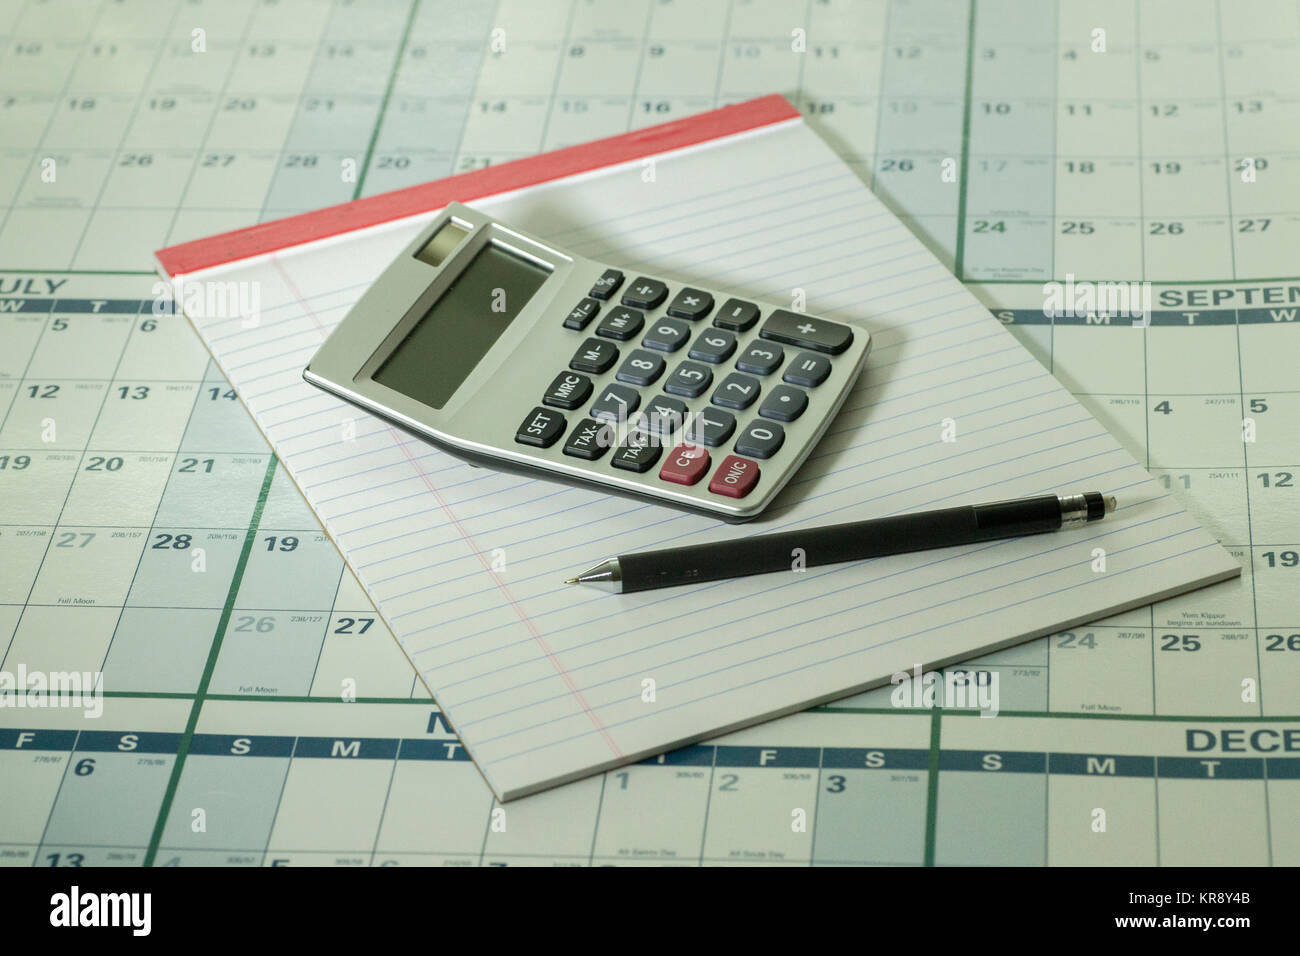 Calculator pad and pencil  on calandar background - Stock Image